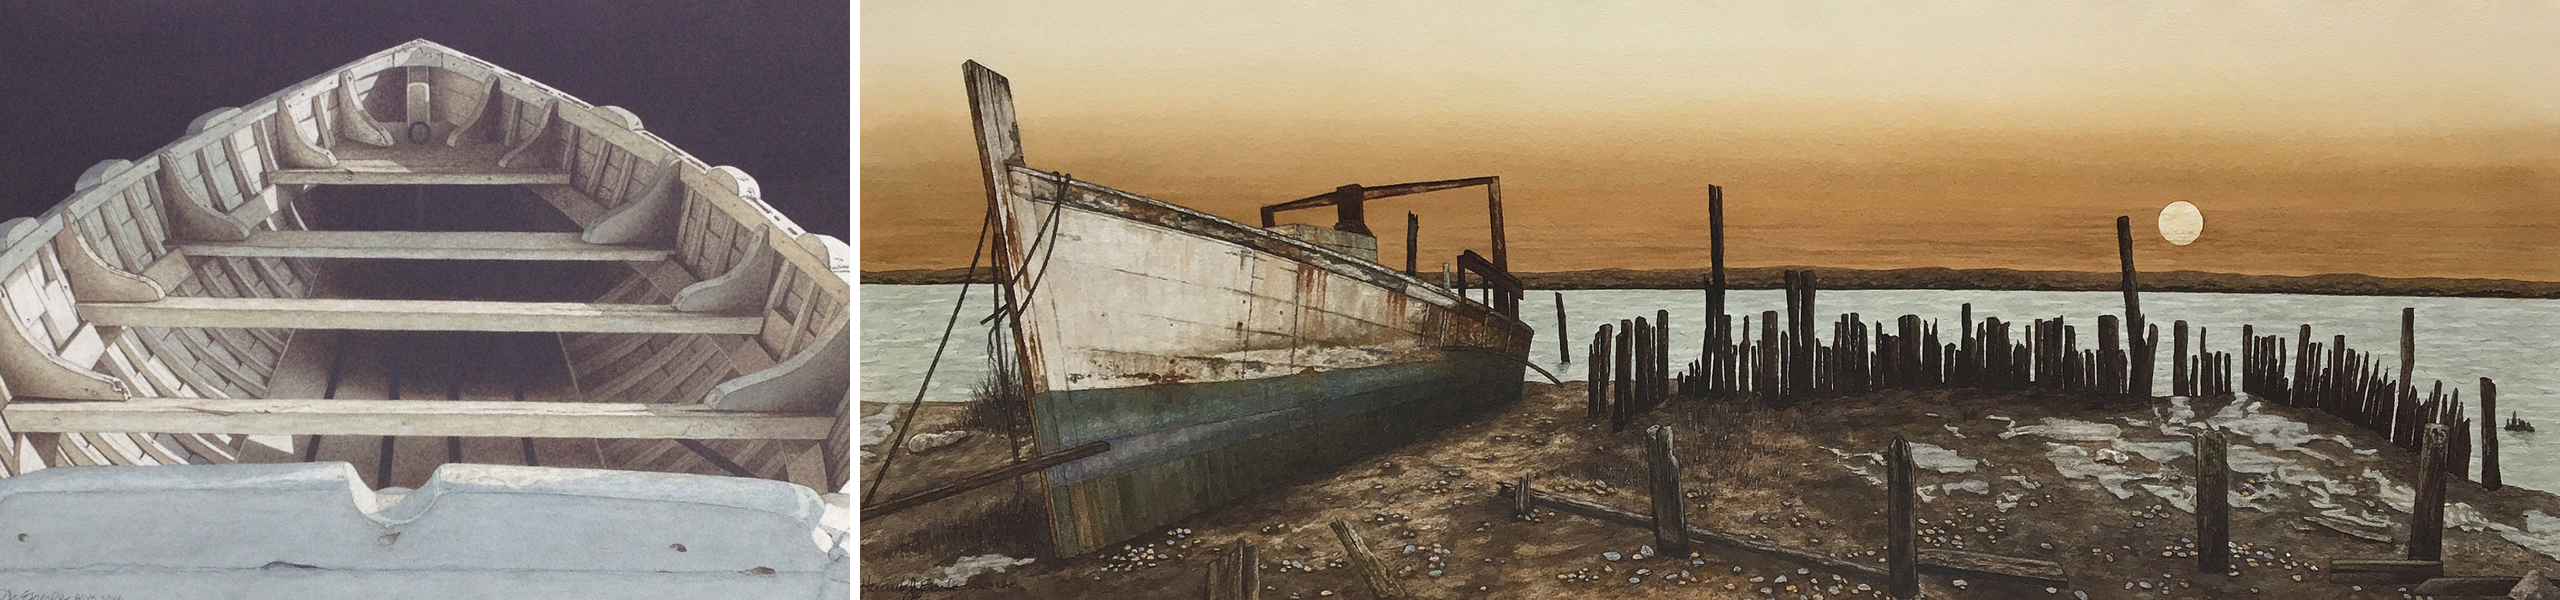 Eberle's paintings Skiff old, white, wooden boat on dark background and Daybreak boat on sandy shore next to the remnants of an old, wooden pier in front of water with a sunrise in the background